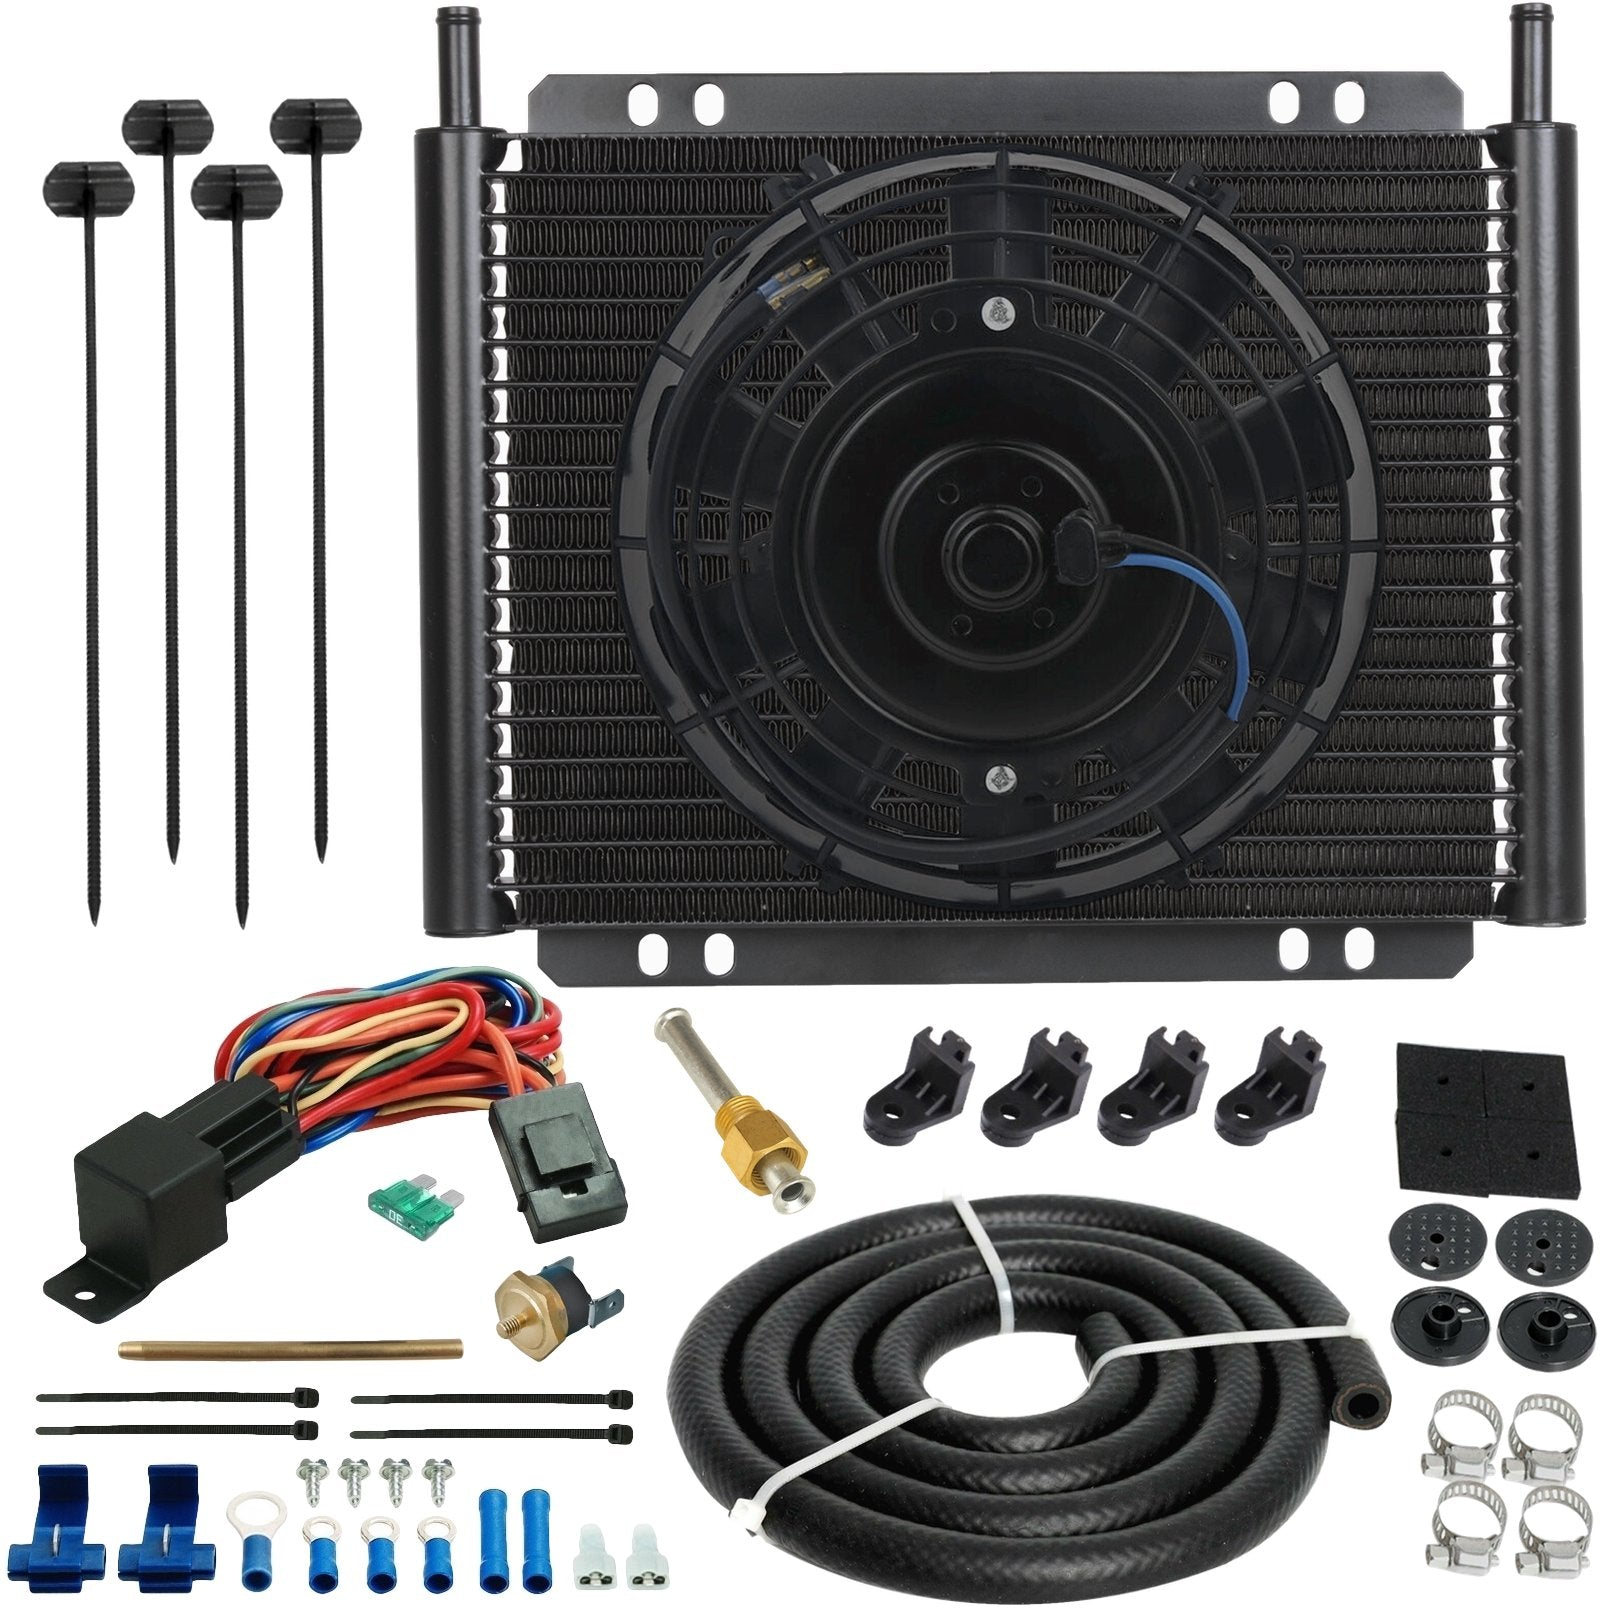 "23 Row Engine Transmission Oil Cooler 8 Inch Radiator Electric Cooling Fan Fin Probe Thermostat Kit-Oil Cooler-American Volt-6AN-3"" Inch-140'F On - 125'F Off-American Volt"